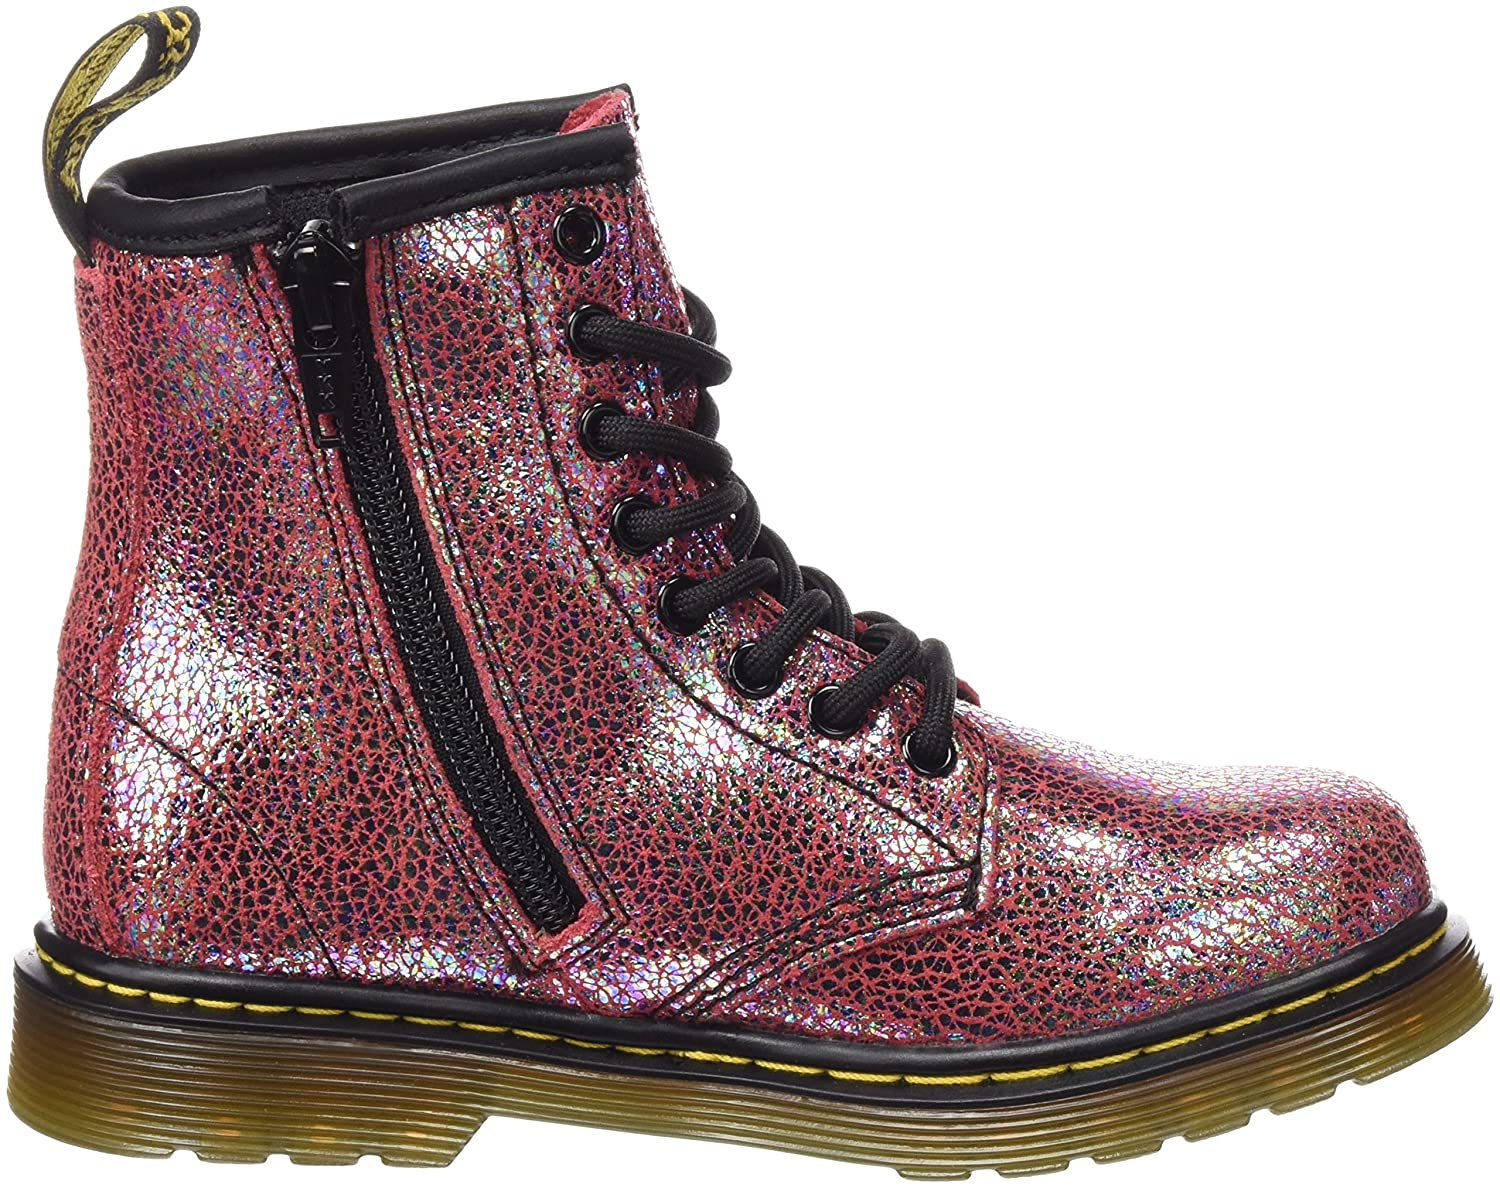 Dr. Martens Delaney Junior - Ref. 21559650-DELANEY DYVth